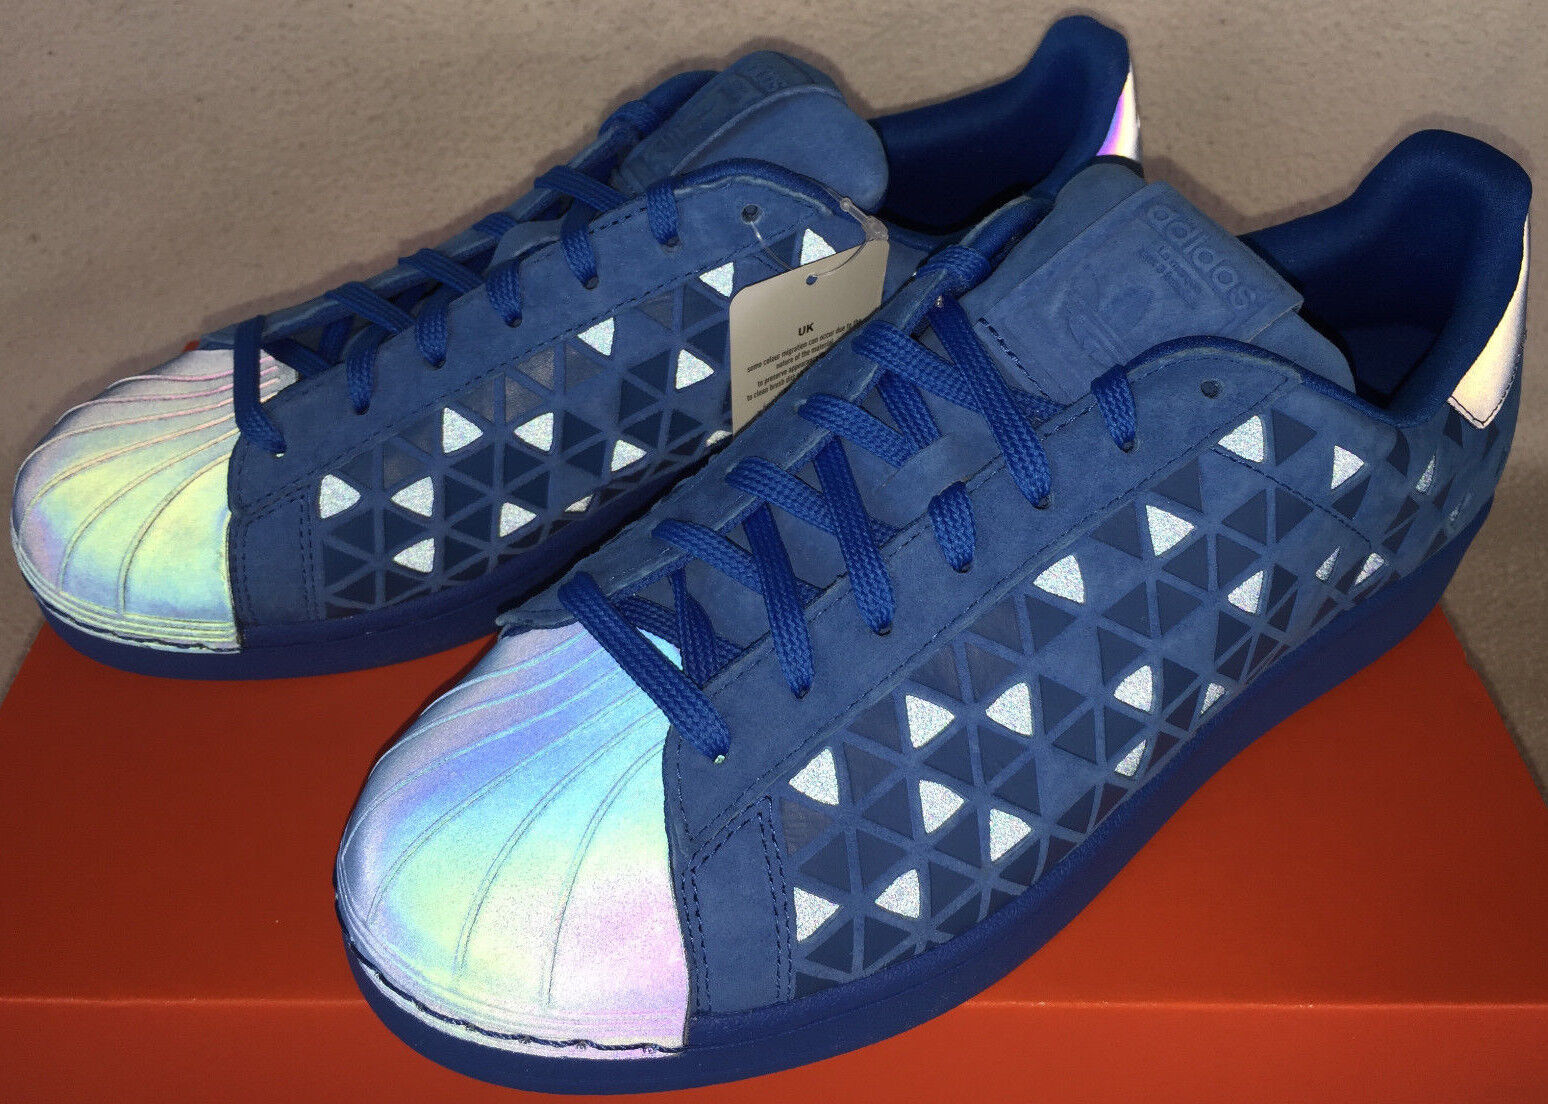 buy online 4aa23 c95d9 Adidas Superstar Xeno AQ8183 Reflective Blue Casual Basketball Basketball  Basketball Shoes Uomo 9 new cc9b3c